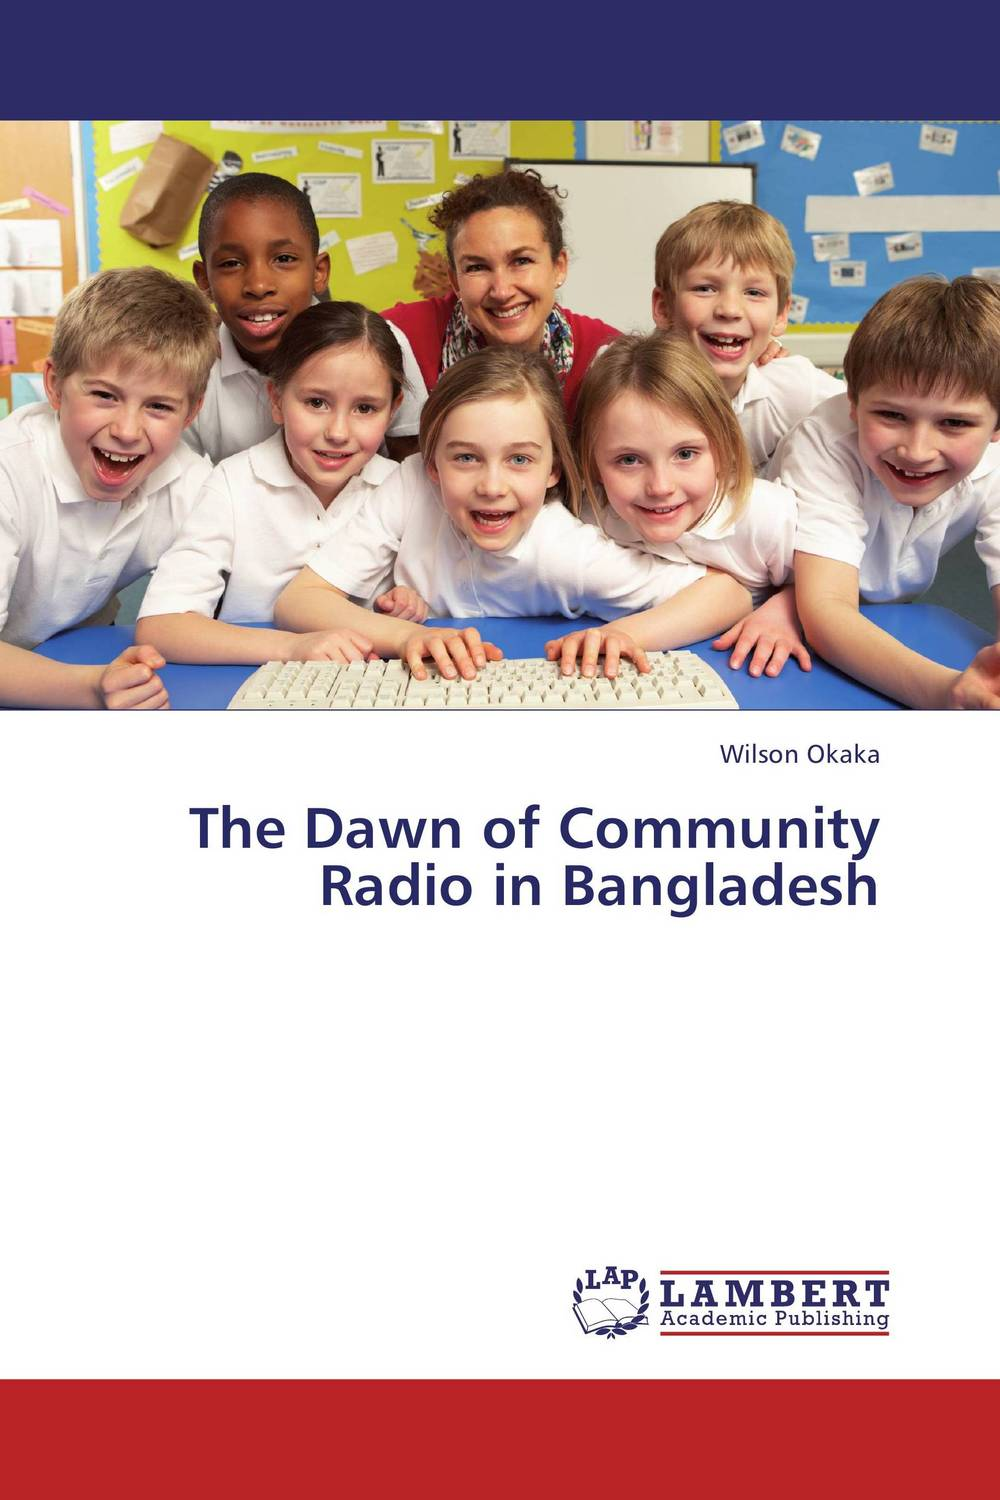 The Dawn of Community Radio in Bangladesh brutal inhuman behavior against women in bangladesh